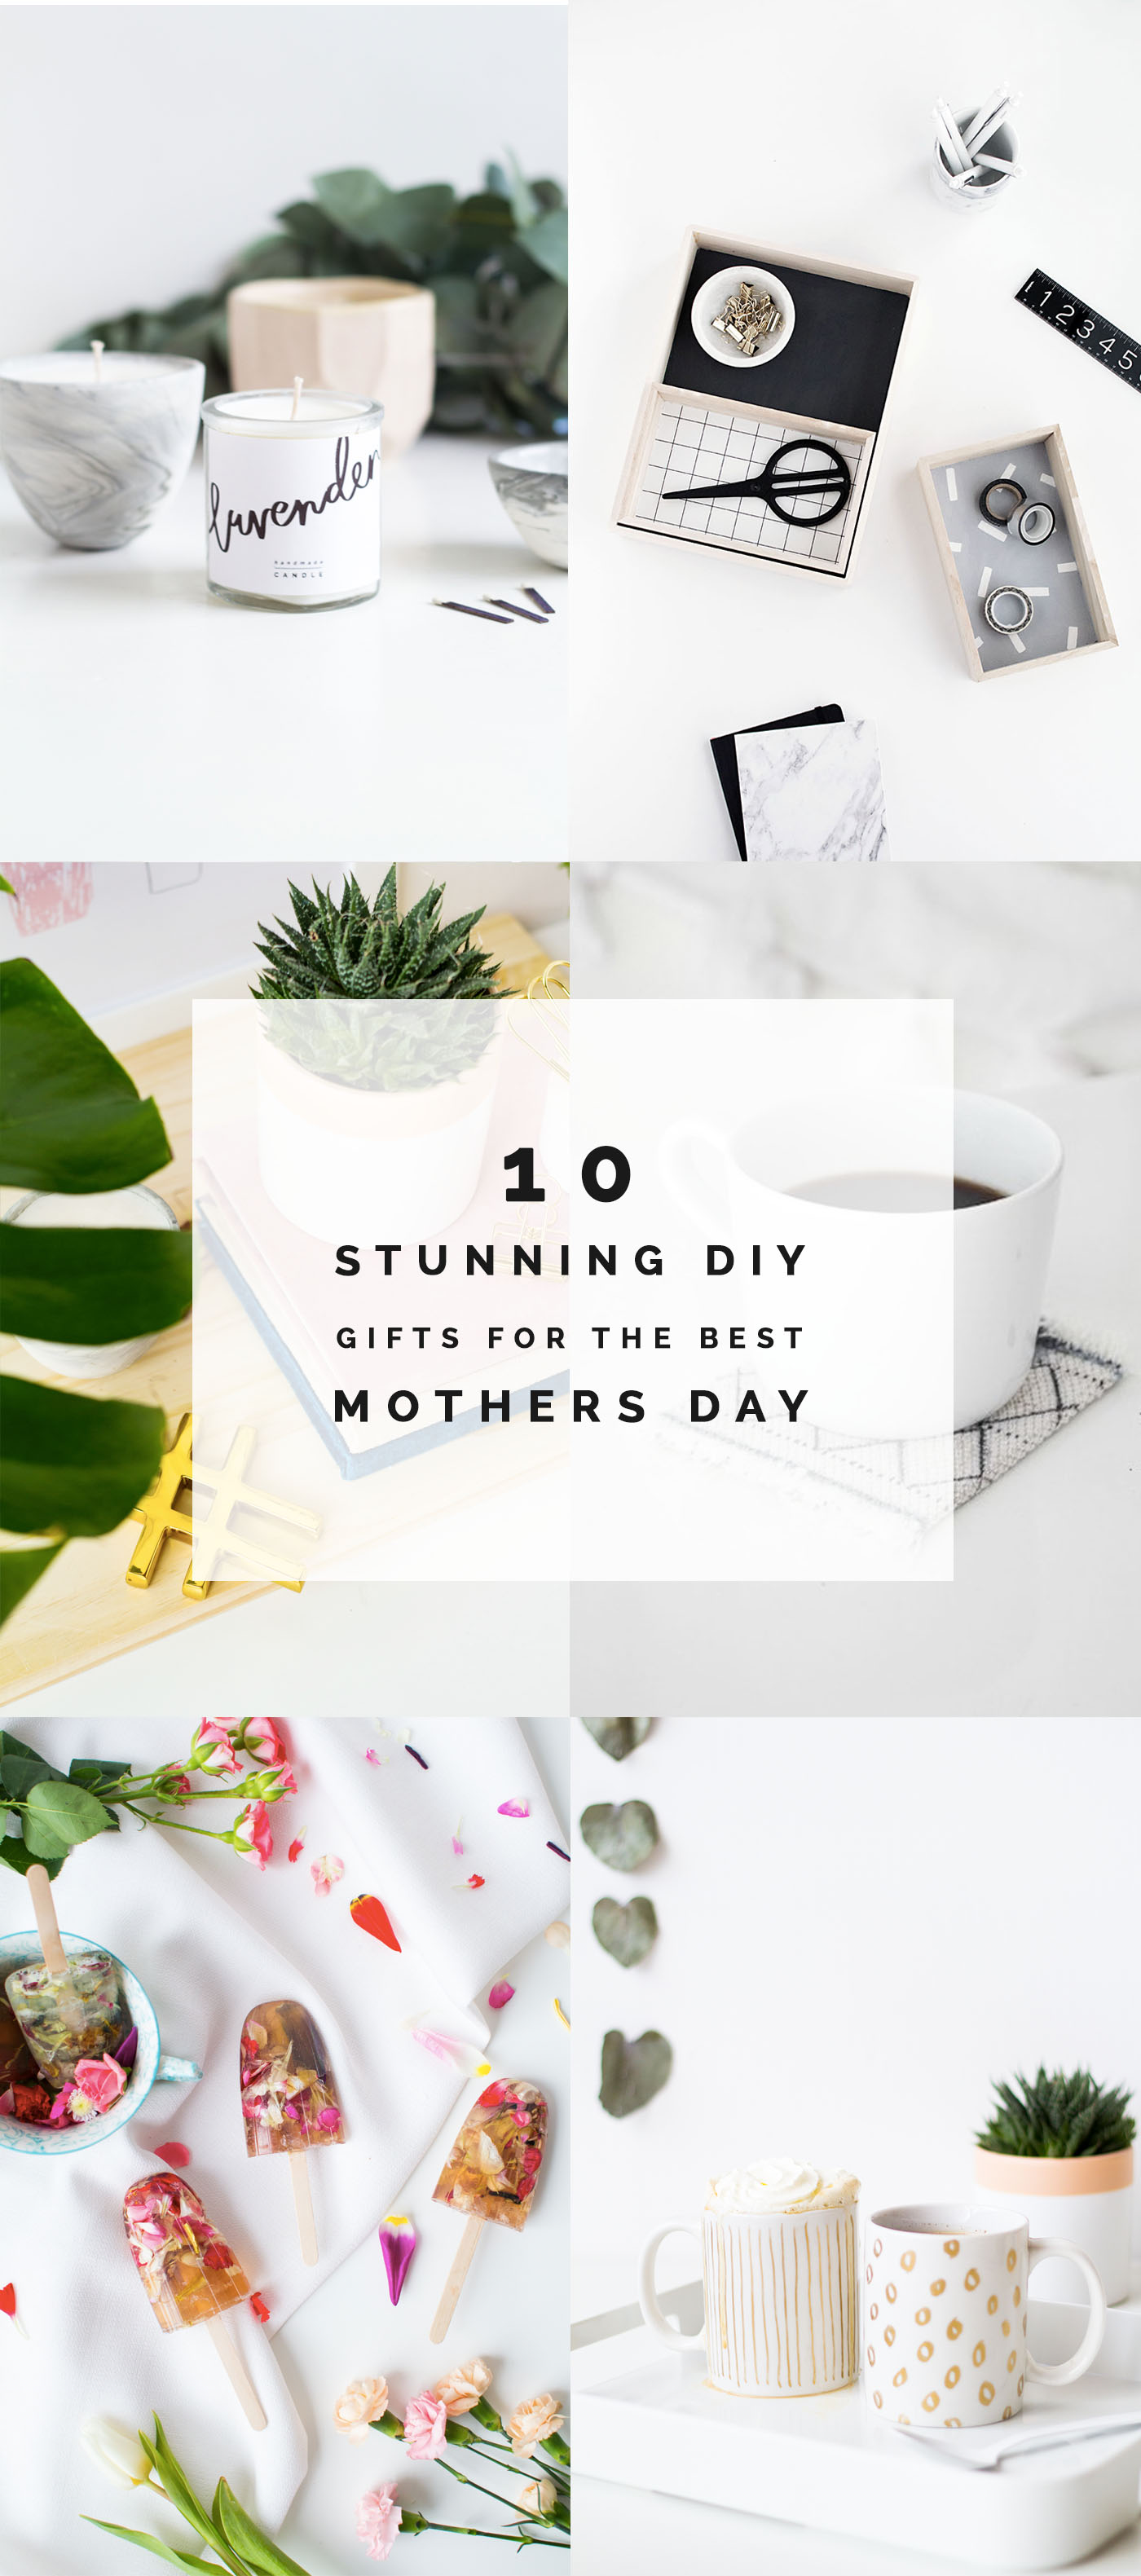 10 Stunning DIY Gifts for the best Mothers Day